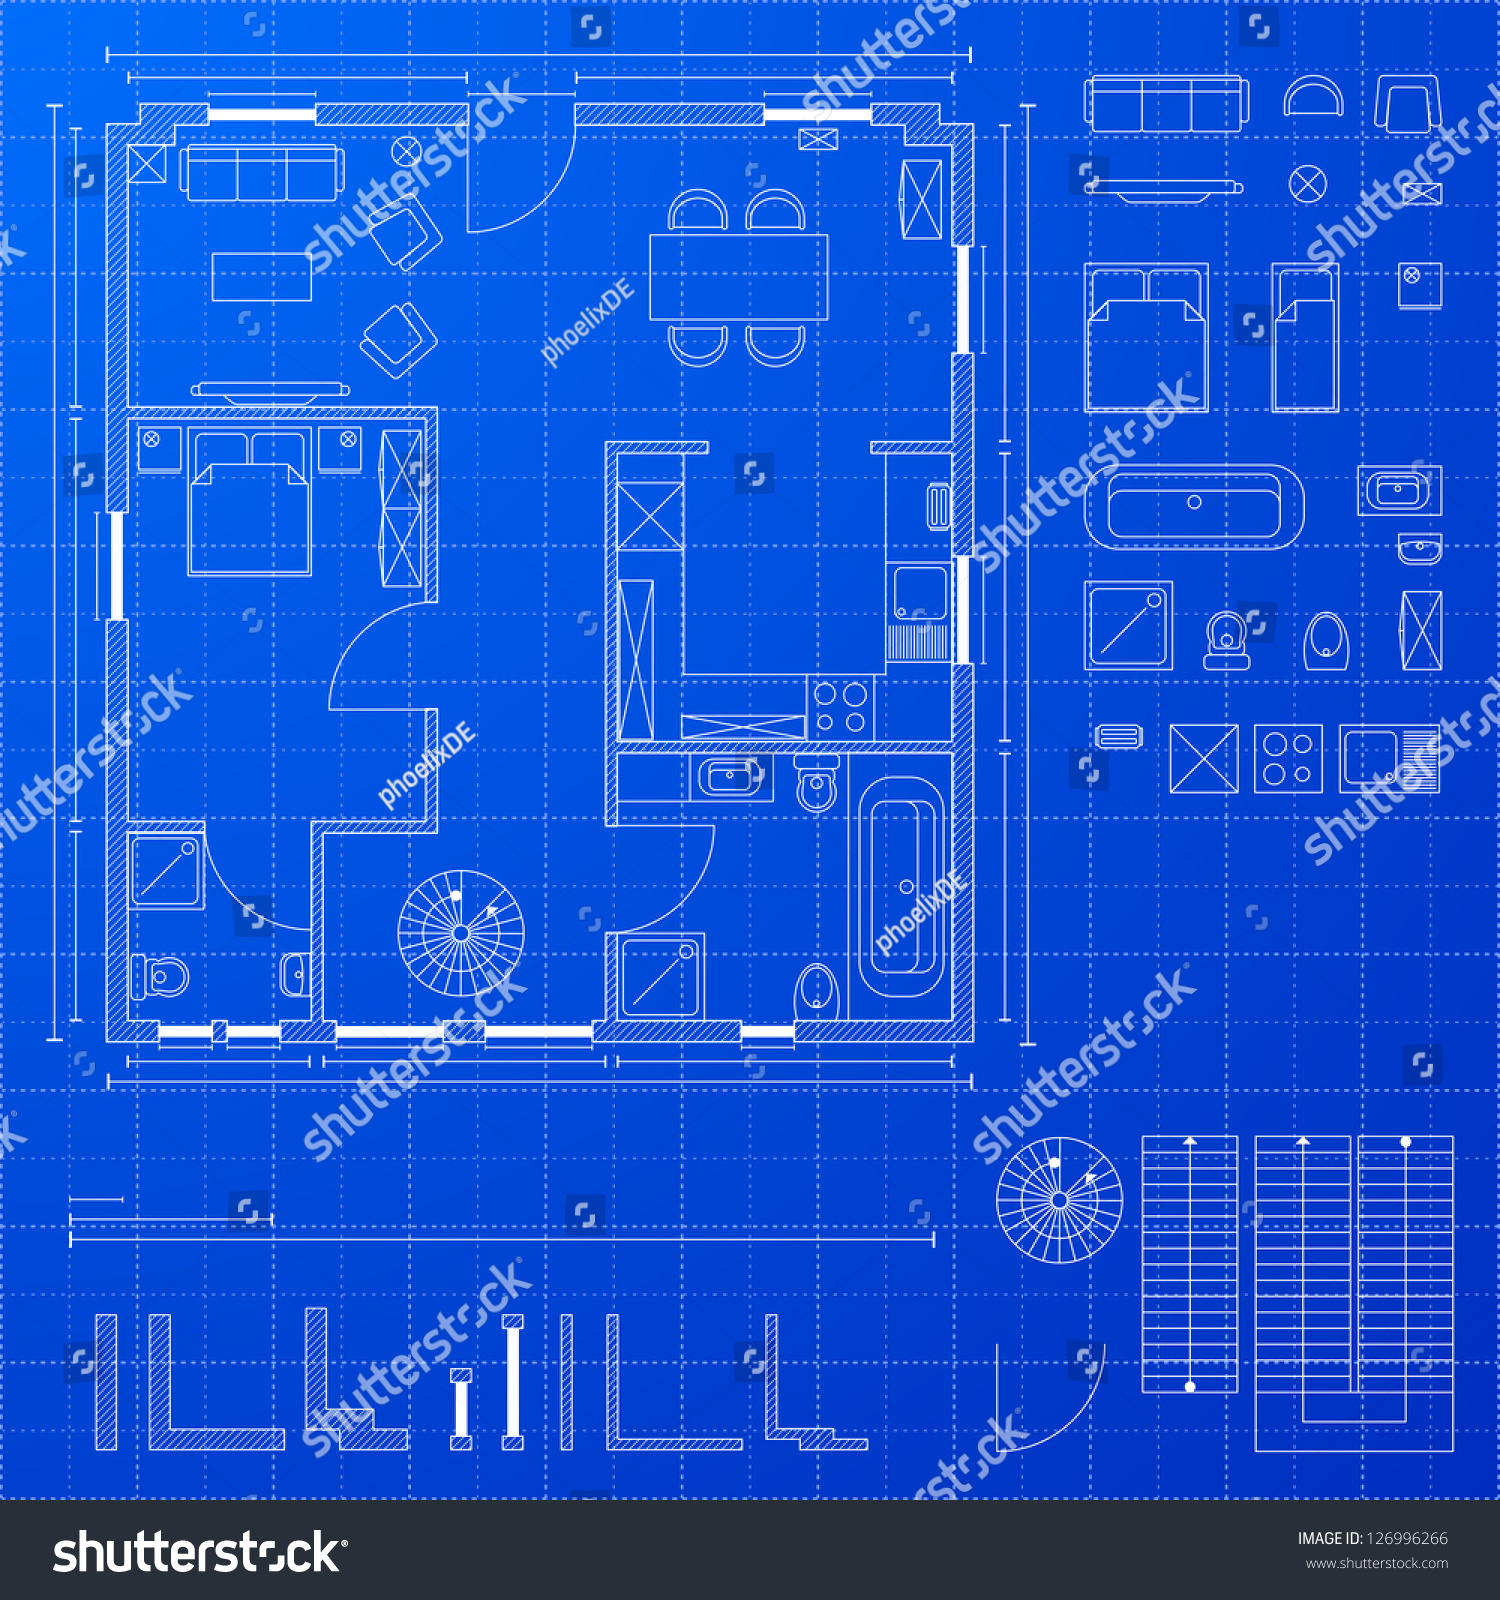 Detailed illustration blueprint floorplan various design Create a blueprint